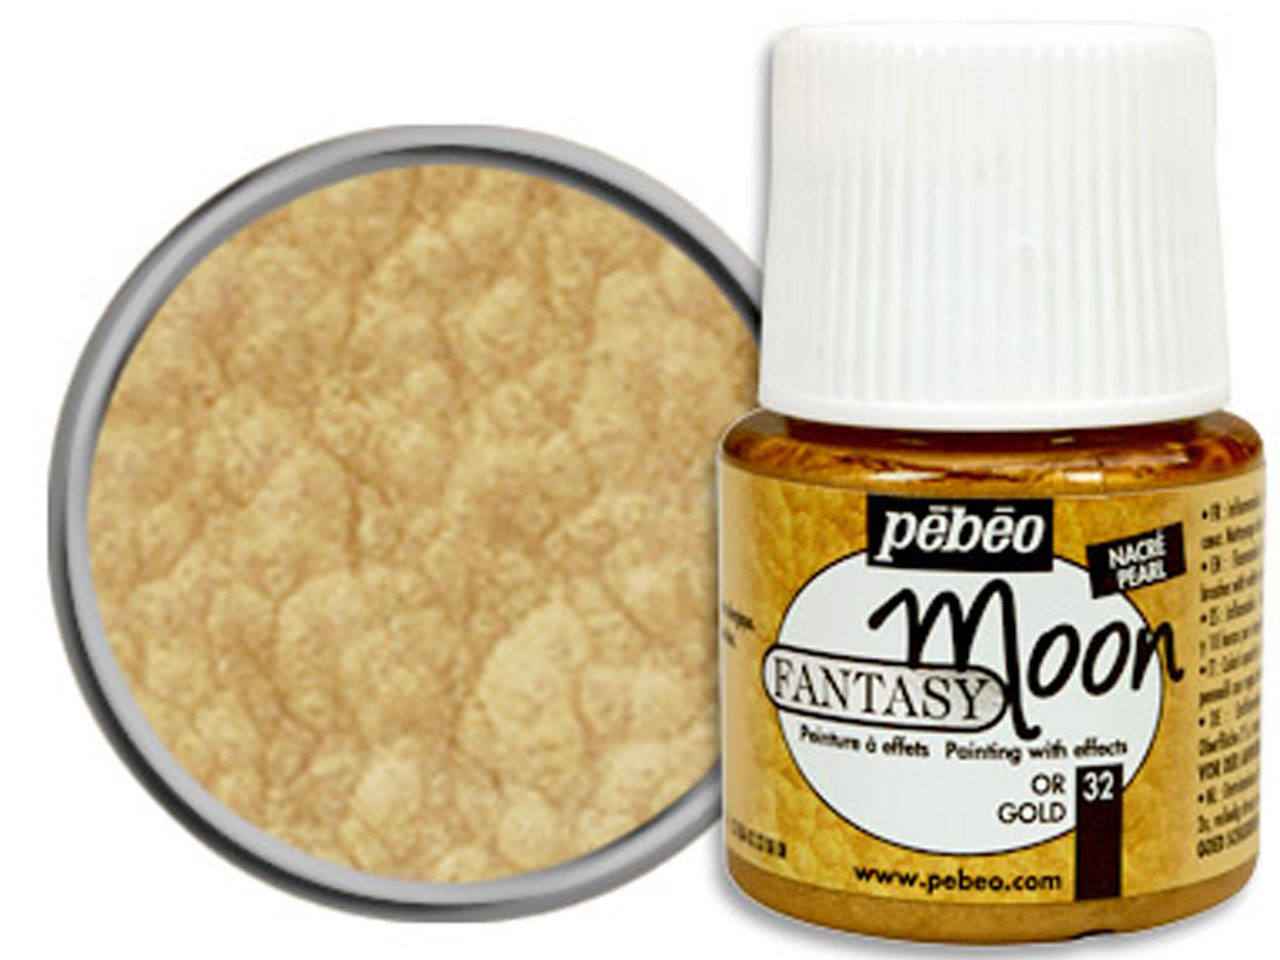 Pebeo Fantasy Moon, Gold, 45ml     Un1263